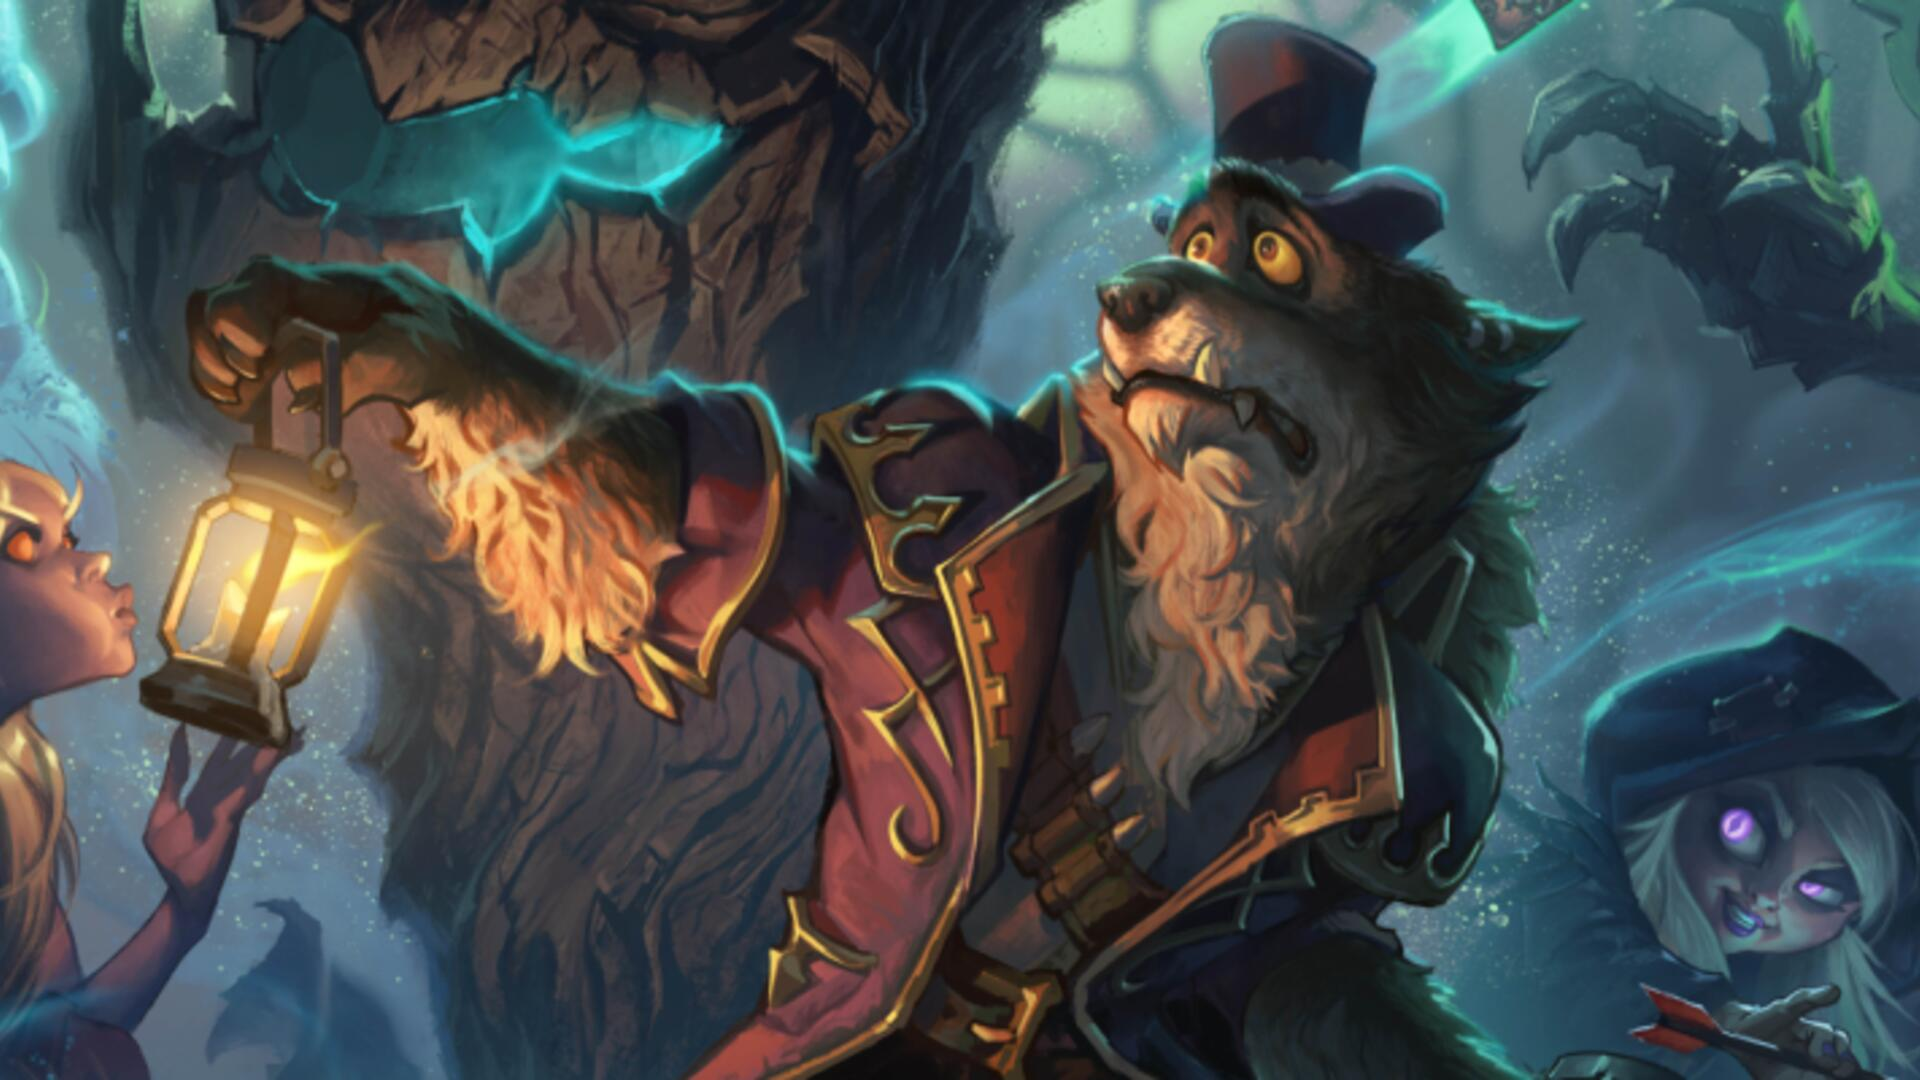 New Hearthstone Expansion, The Witchwood, Releases Next Week